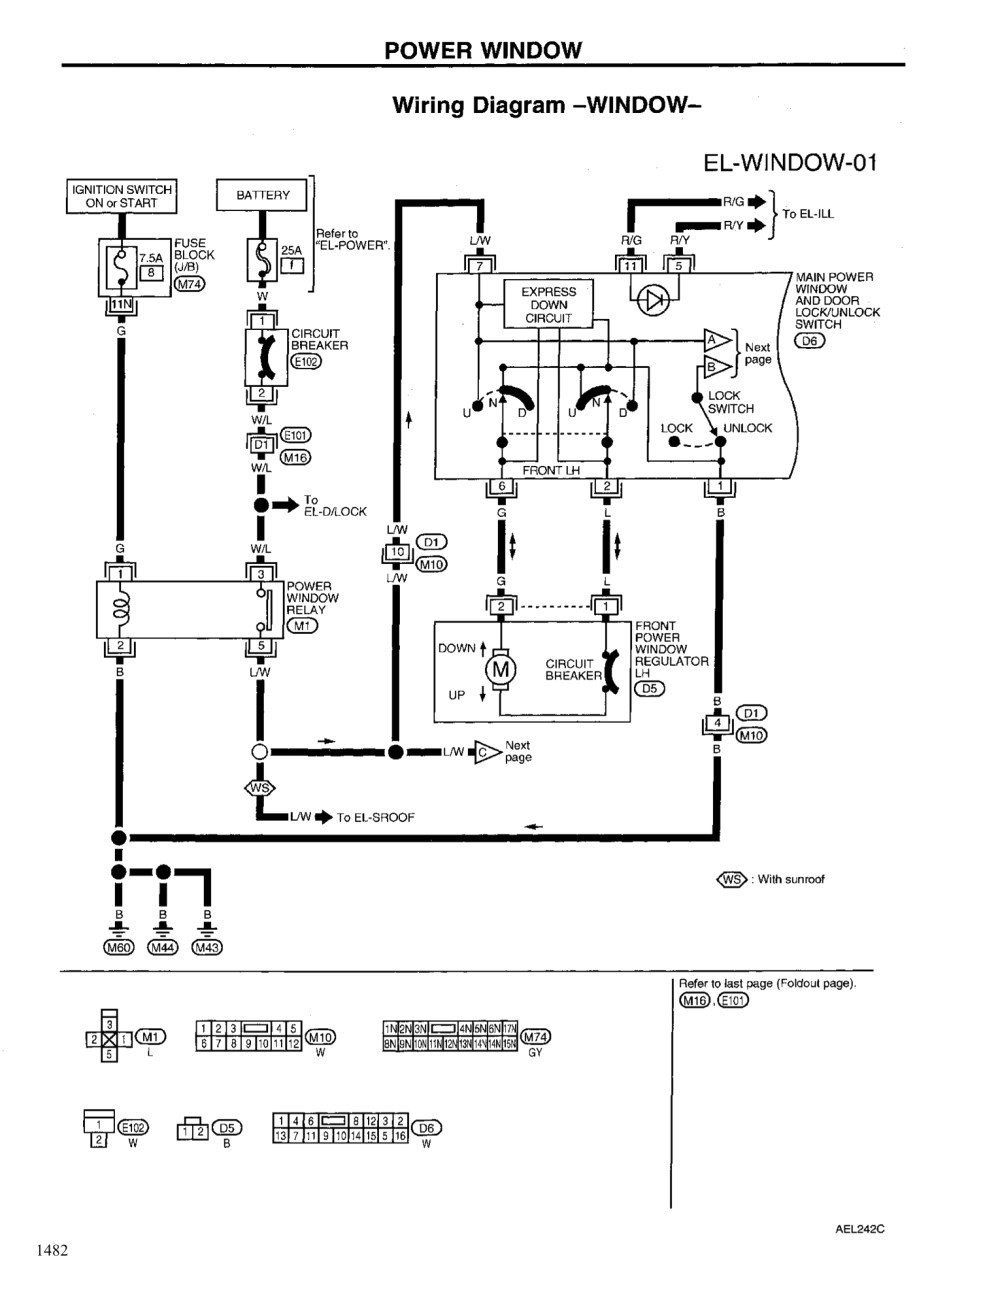 Sample Wiring Diagrams For Pet Stop System on